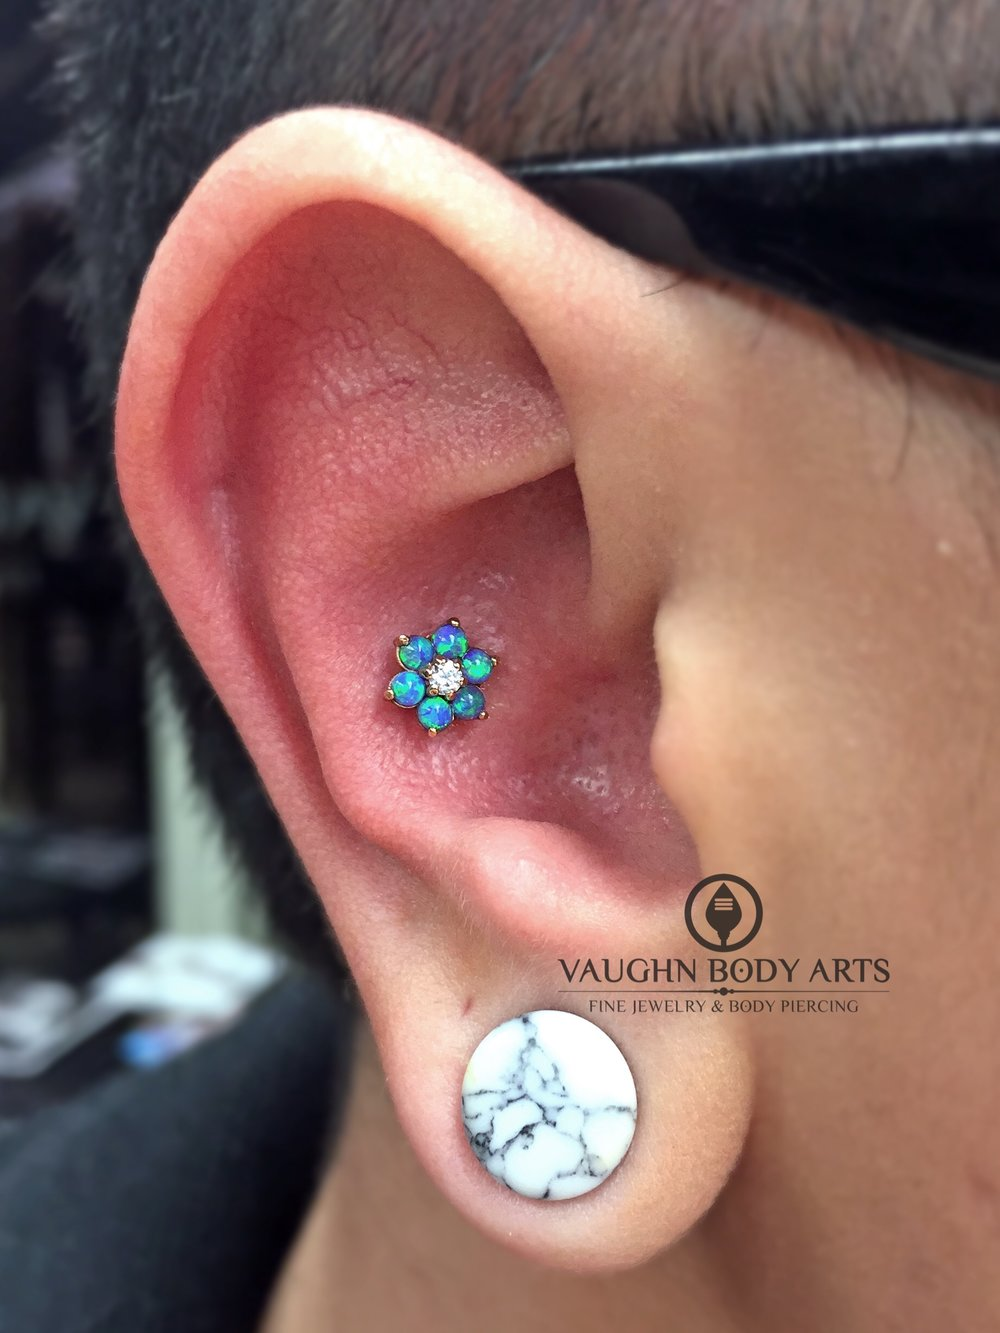 Conch piercing featuring an 18k yellow gold flower from Anatometal.